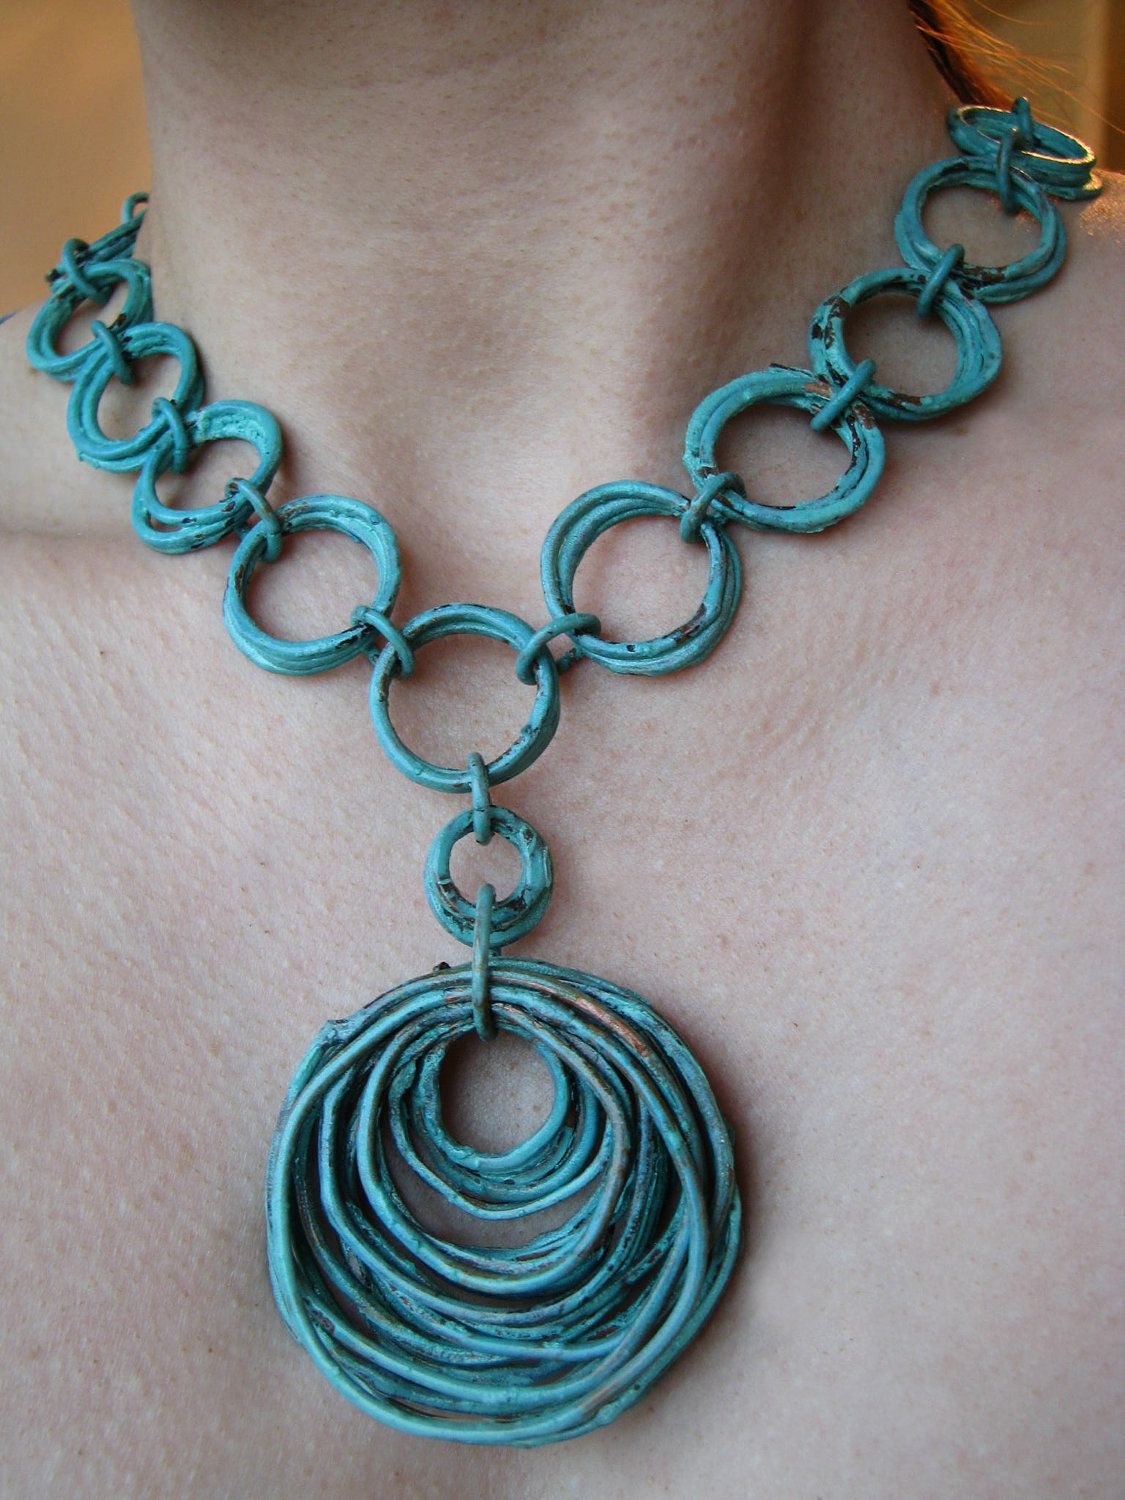 Necklace | Jamie Spinello.  Copper with a turquoise patina.